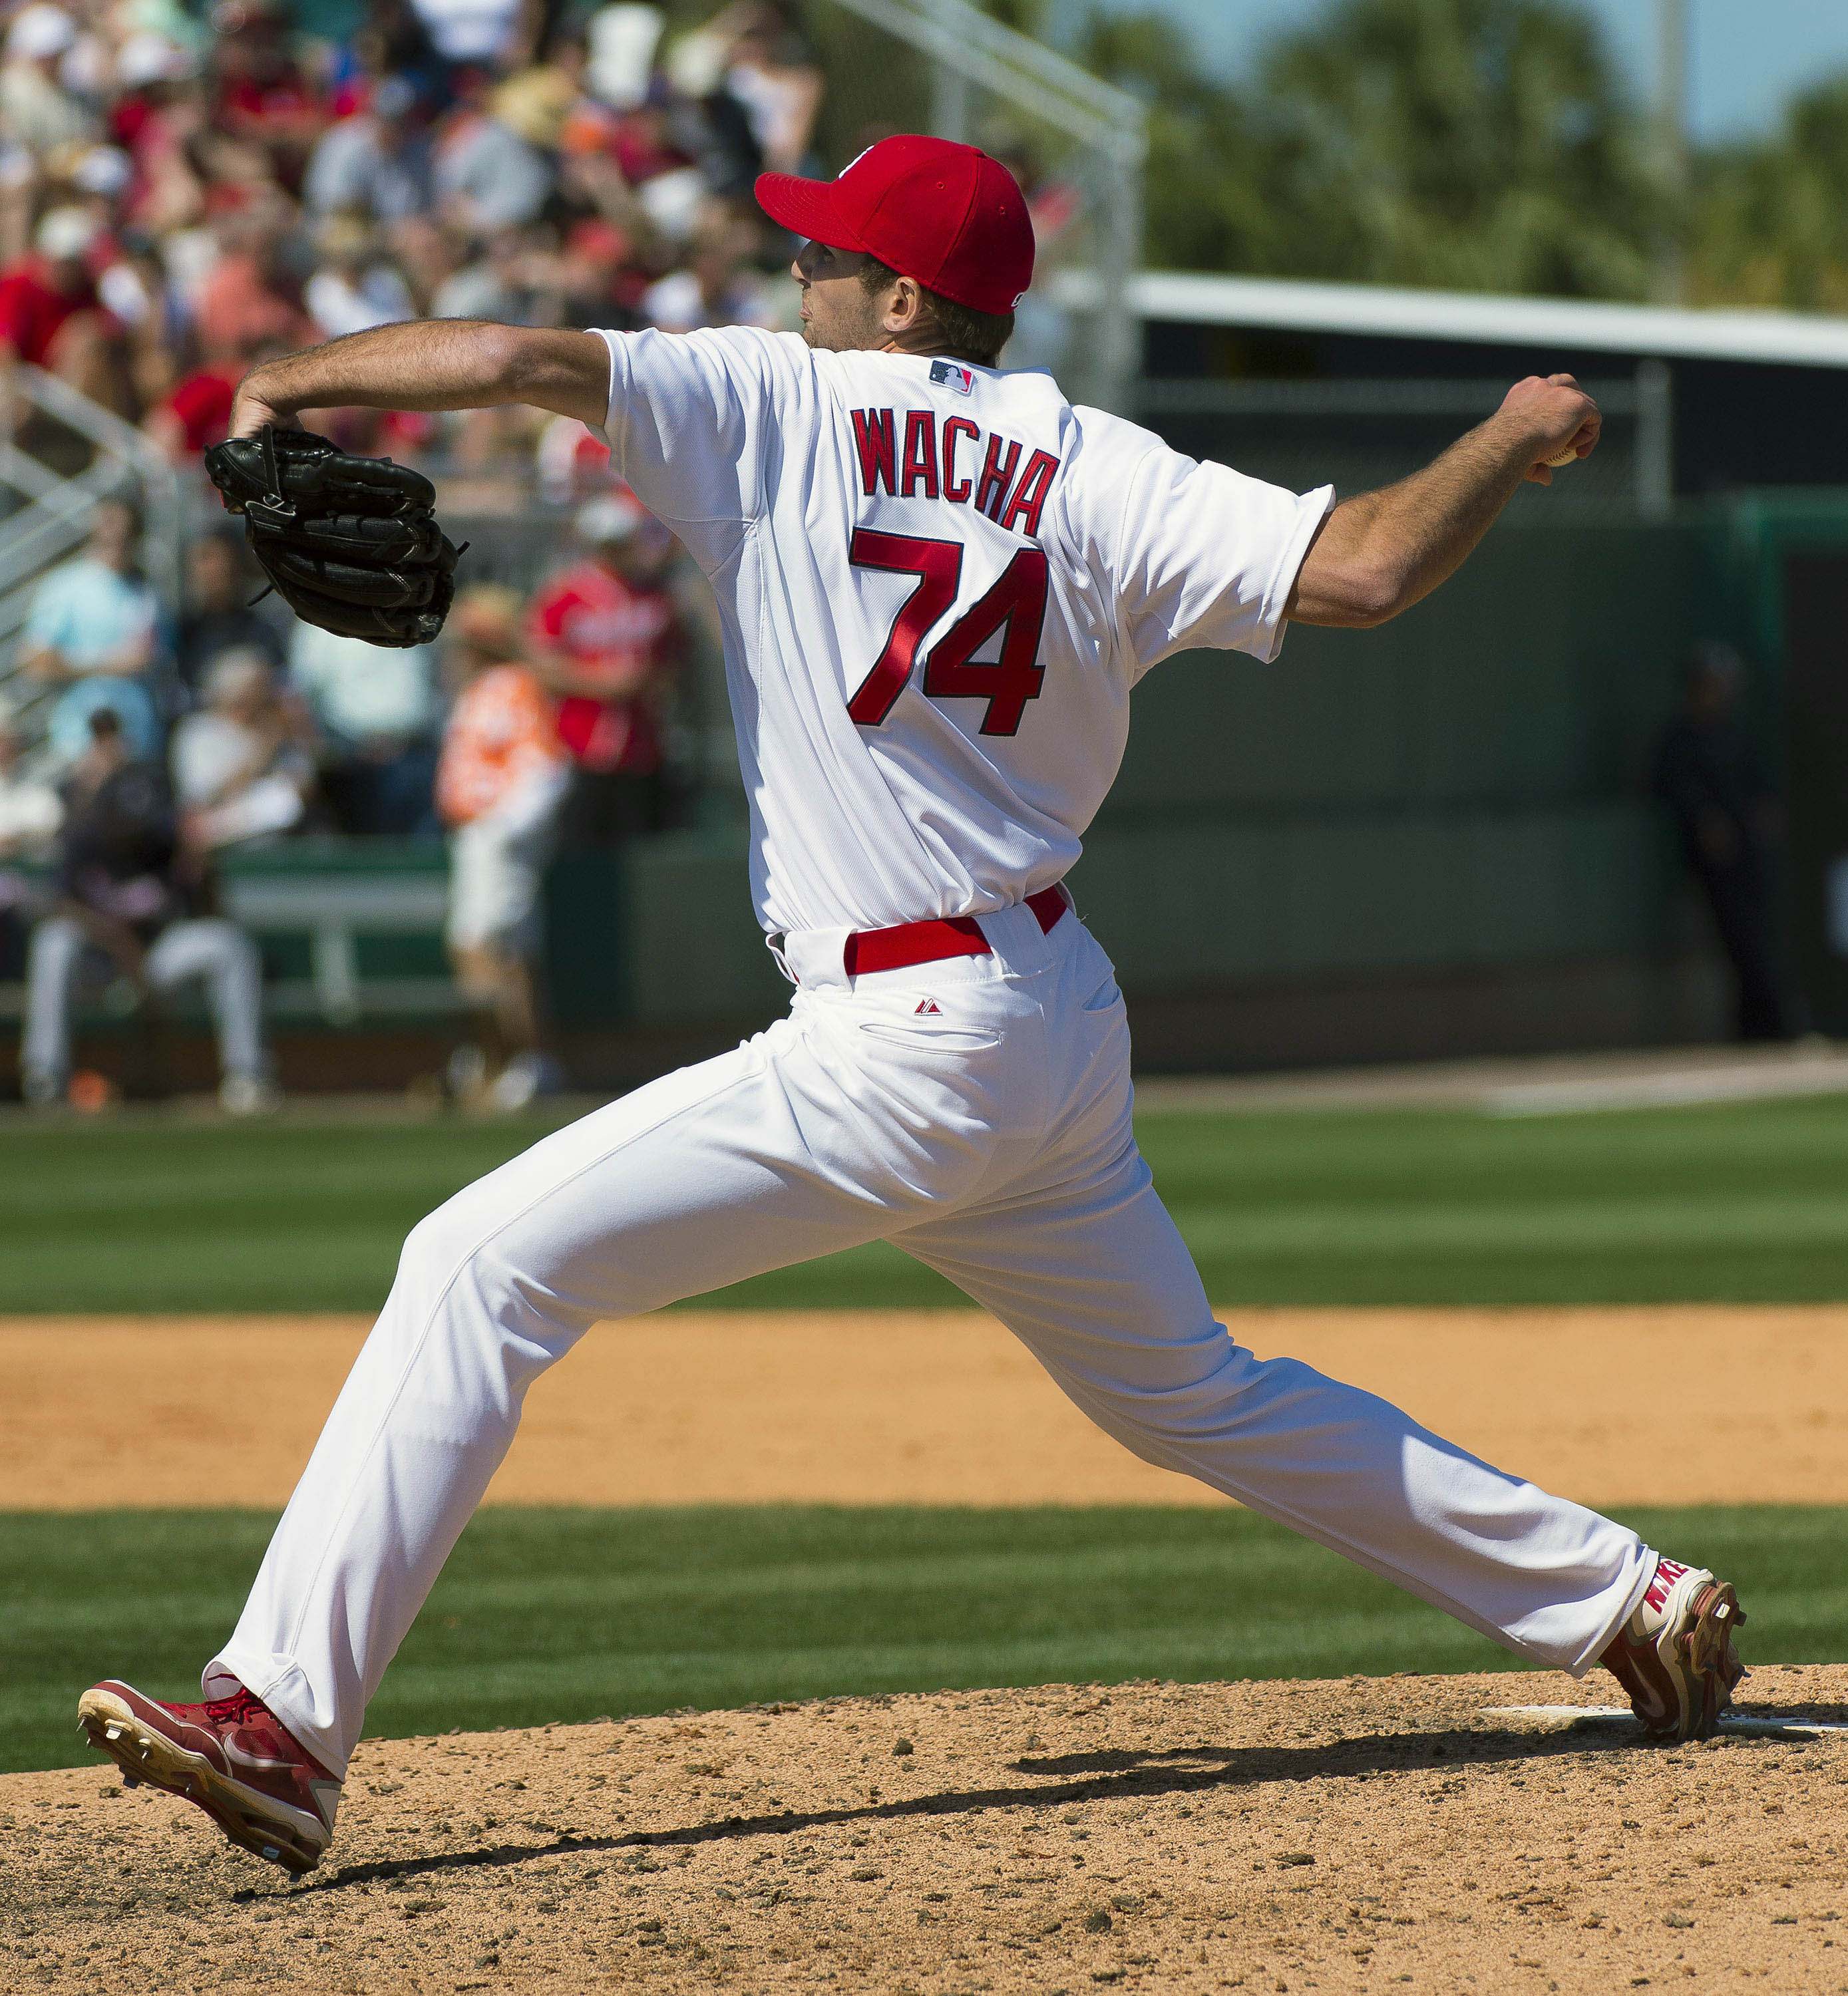 If Michael Wacha can improve his K rate, he could be special. (USAT)